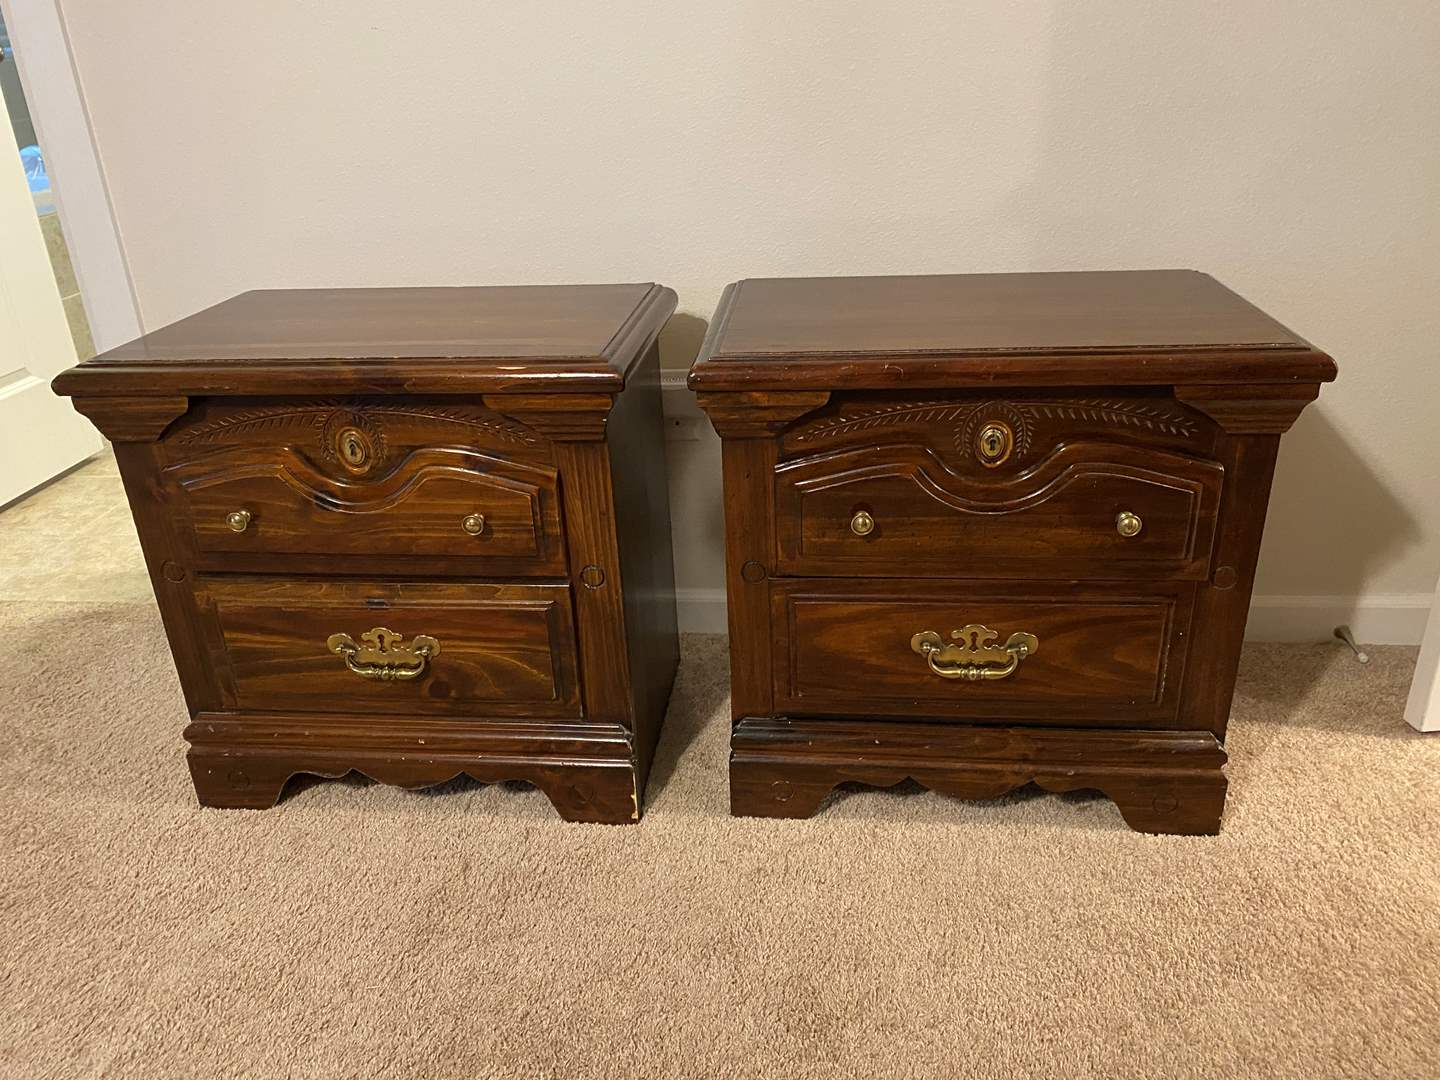 Lot # 249 - Set of Two Wood Night Stands - Matches Lot #248 (main image)